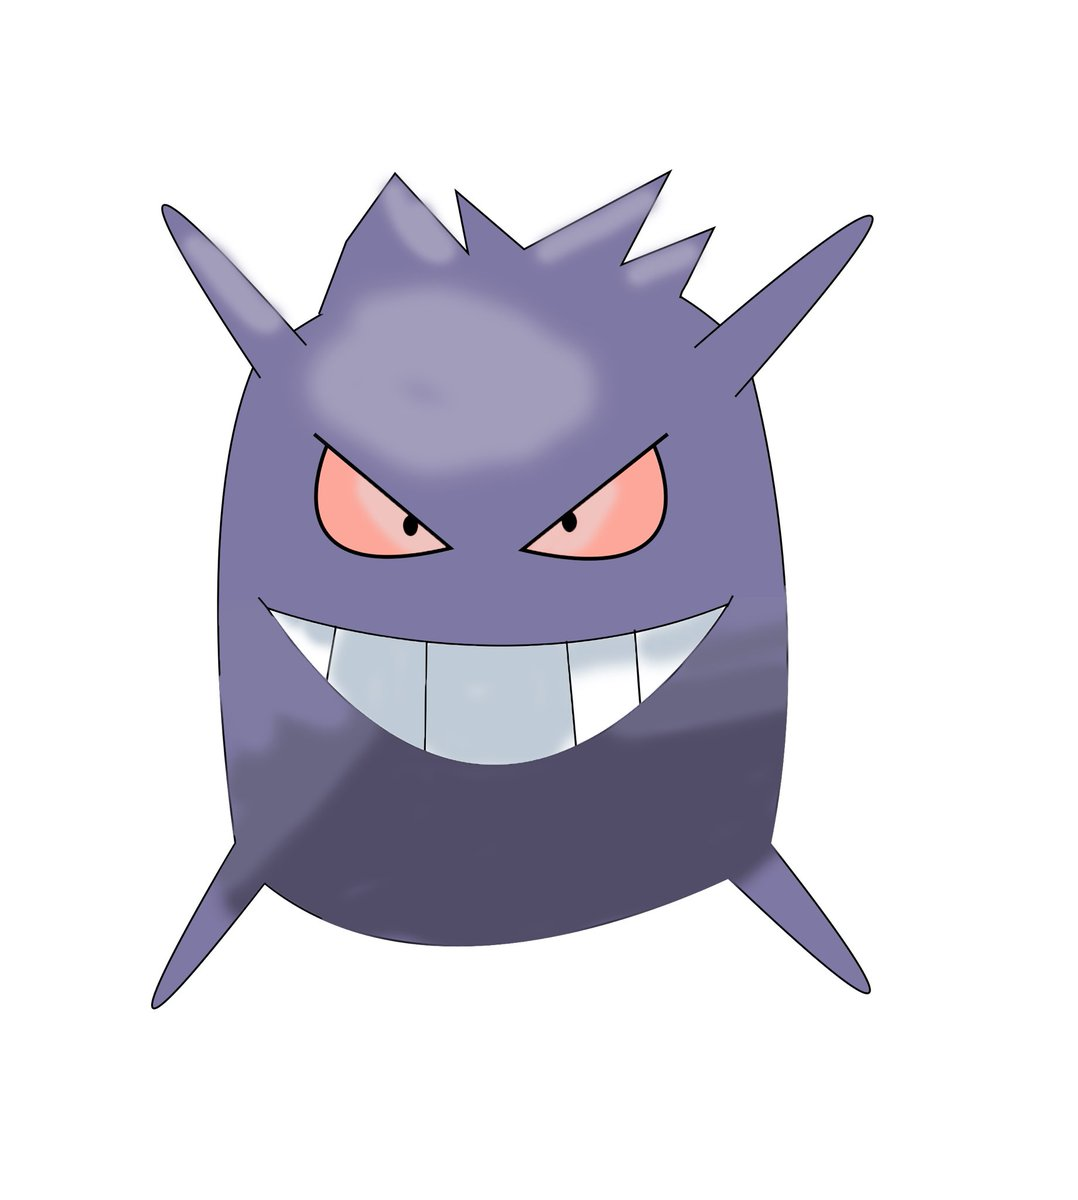 So, i stated to think about if Pokémon Sleep had different forms for pokemon. So I decided to create some of my own. This is a pillow Gengar. (VERY WIP) pic.twitter.com/YnT0Nf3OwN